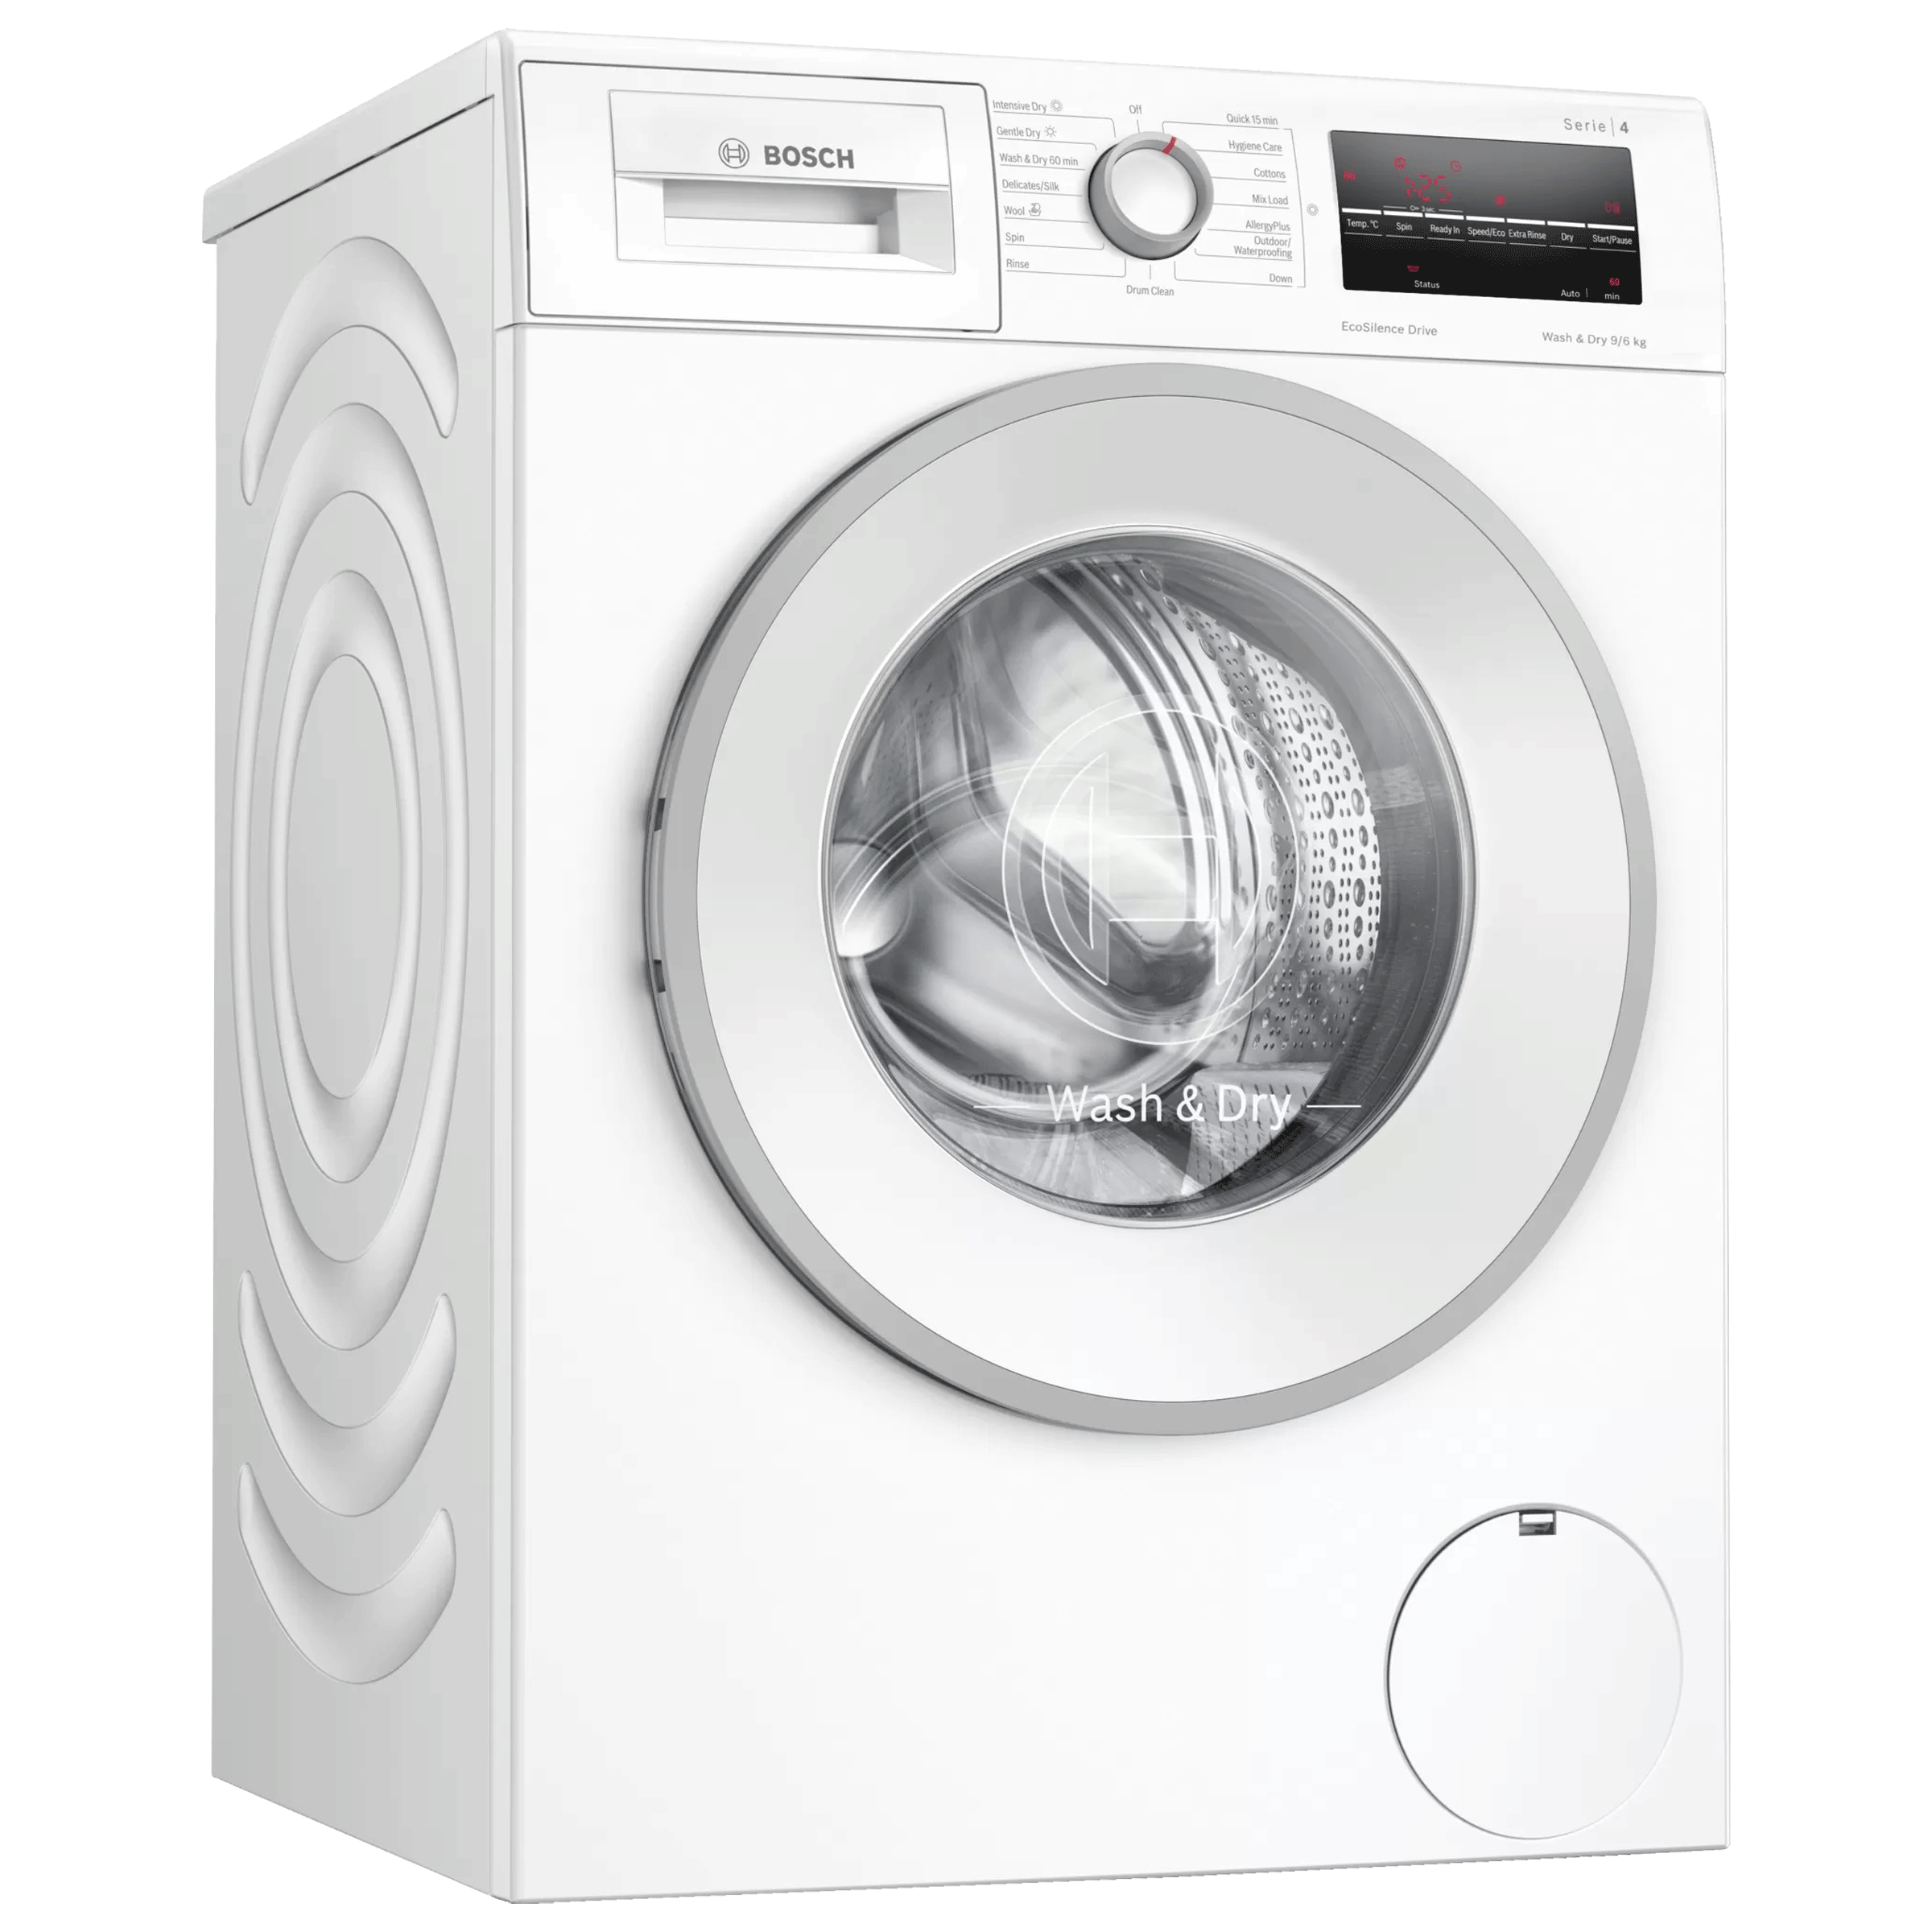 BOSCH Serie 6 9 kg/6 kg 5 Star Fully Automatic Front Load Washer Dryer Combo (VarioInverter, WNA14400IN, White)_1